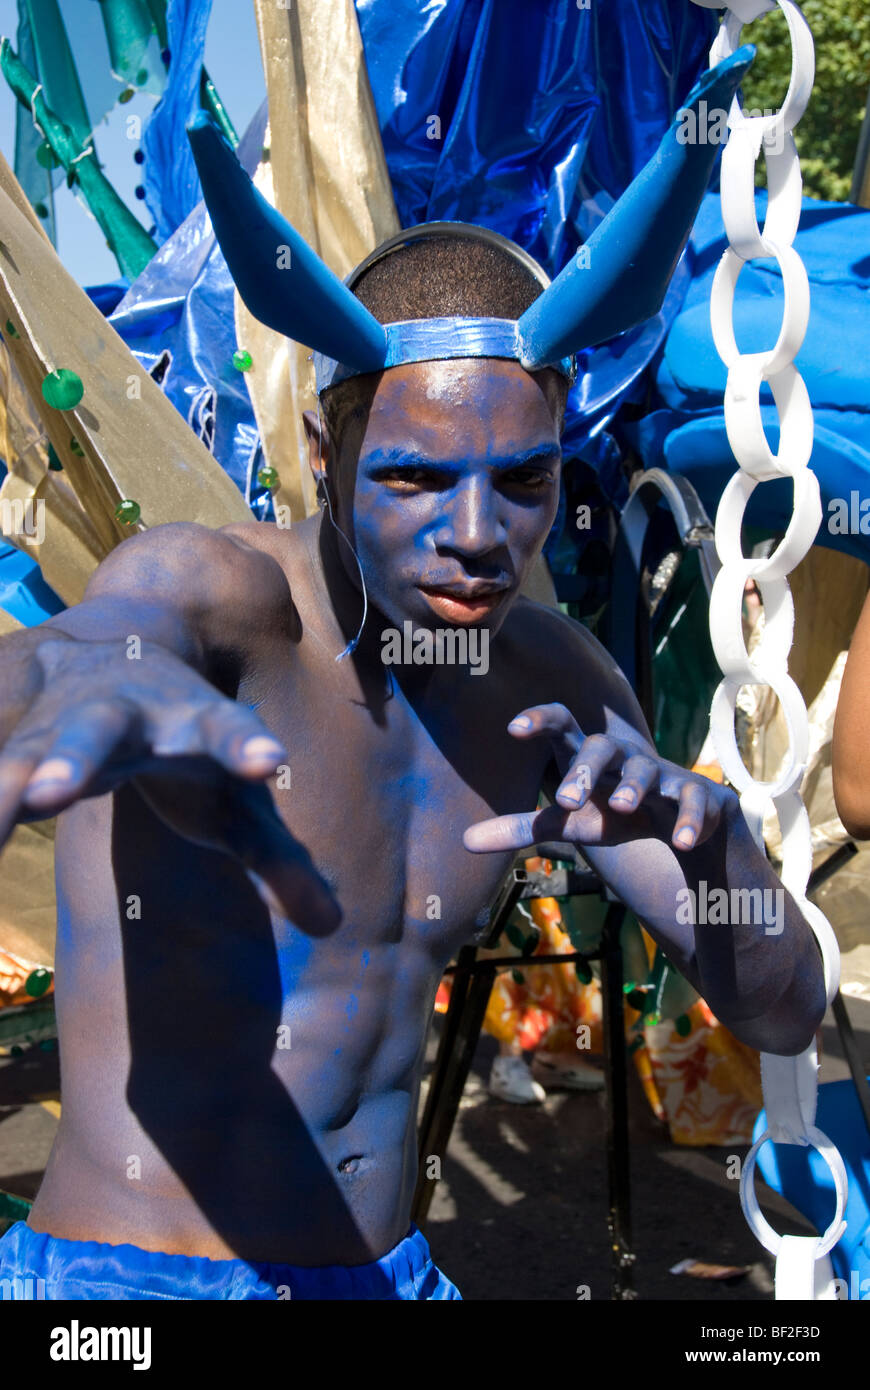 performers at Notting Hill Carnival London - Stock Image